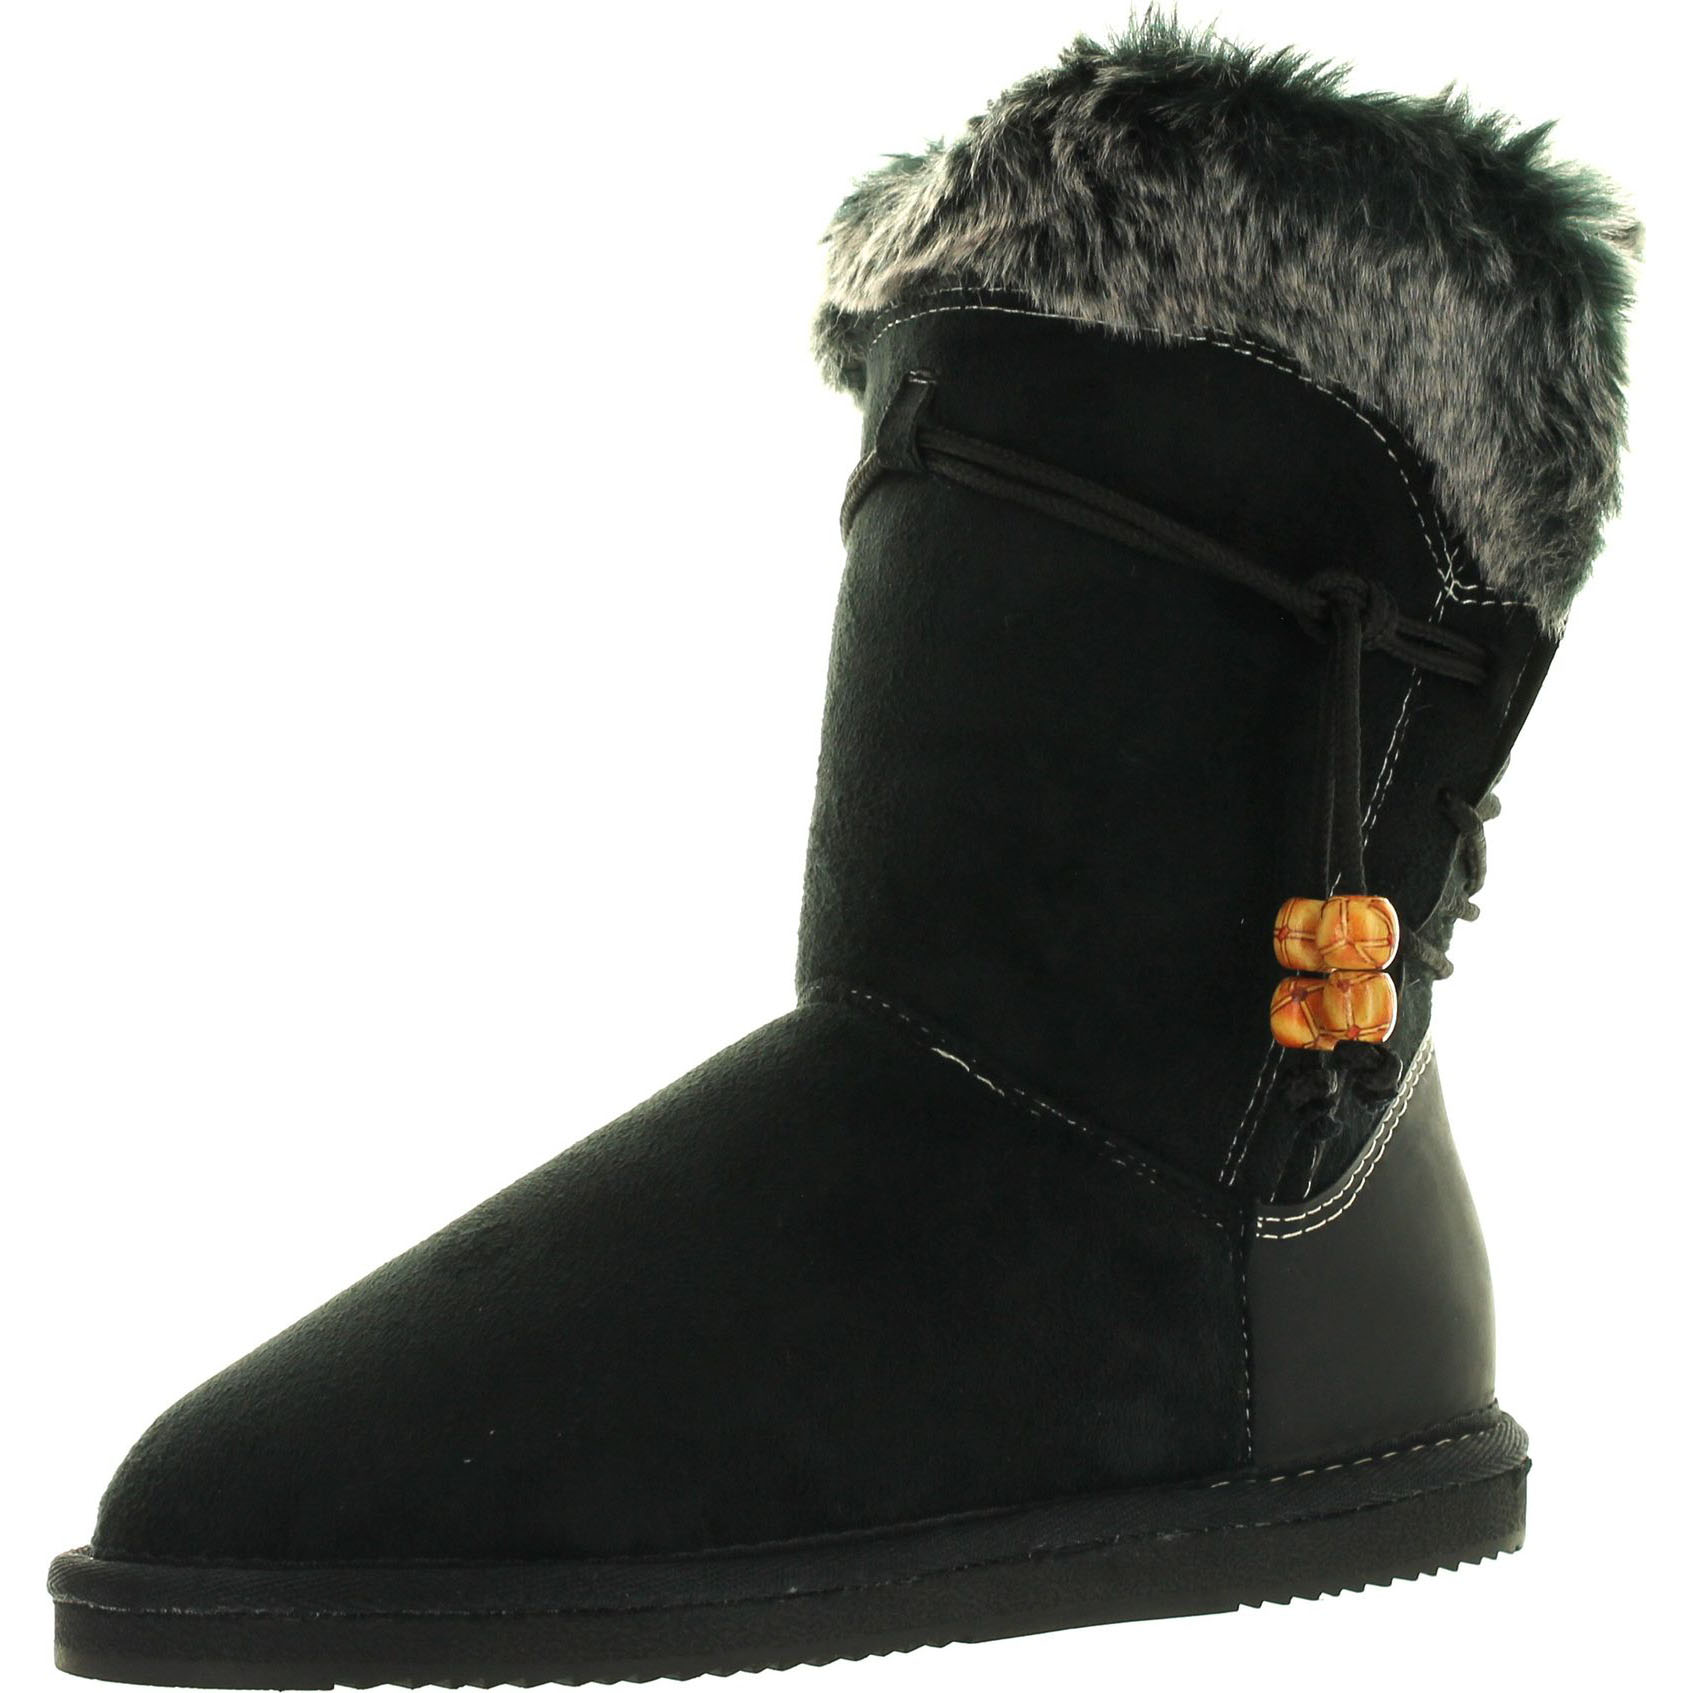 Reneeze Rose-10 Women Fashion Mid-Calf Winter Snow Boots Faux Fur Lining by Reneeze